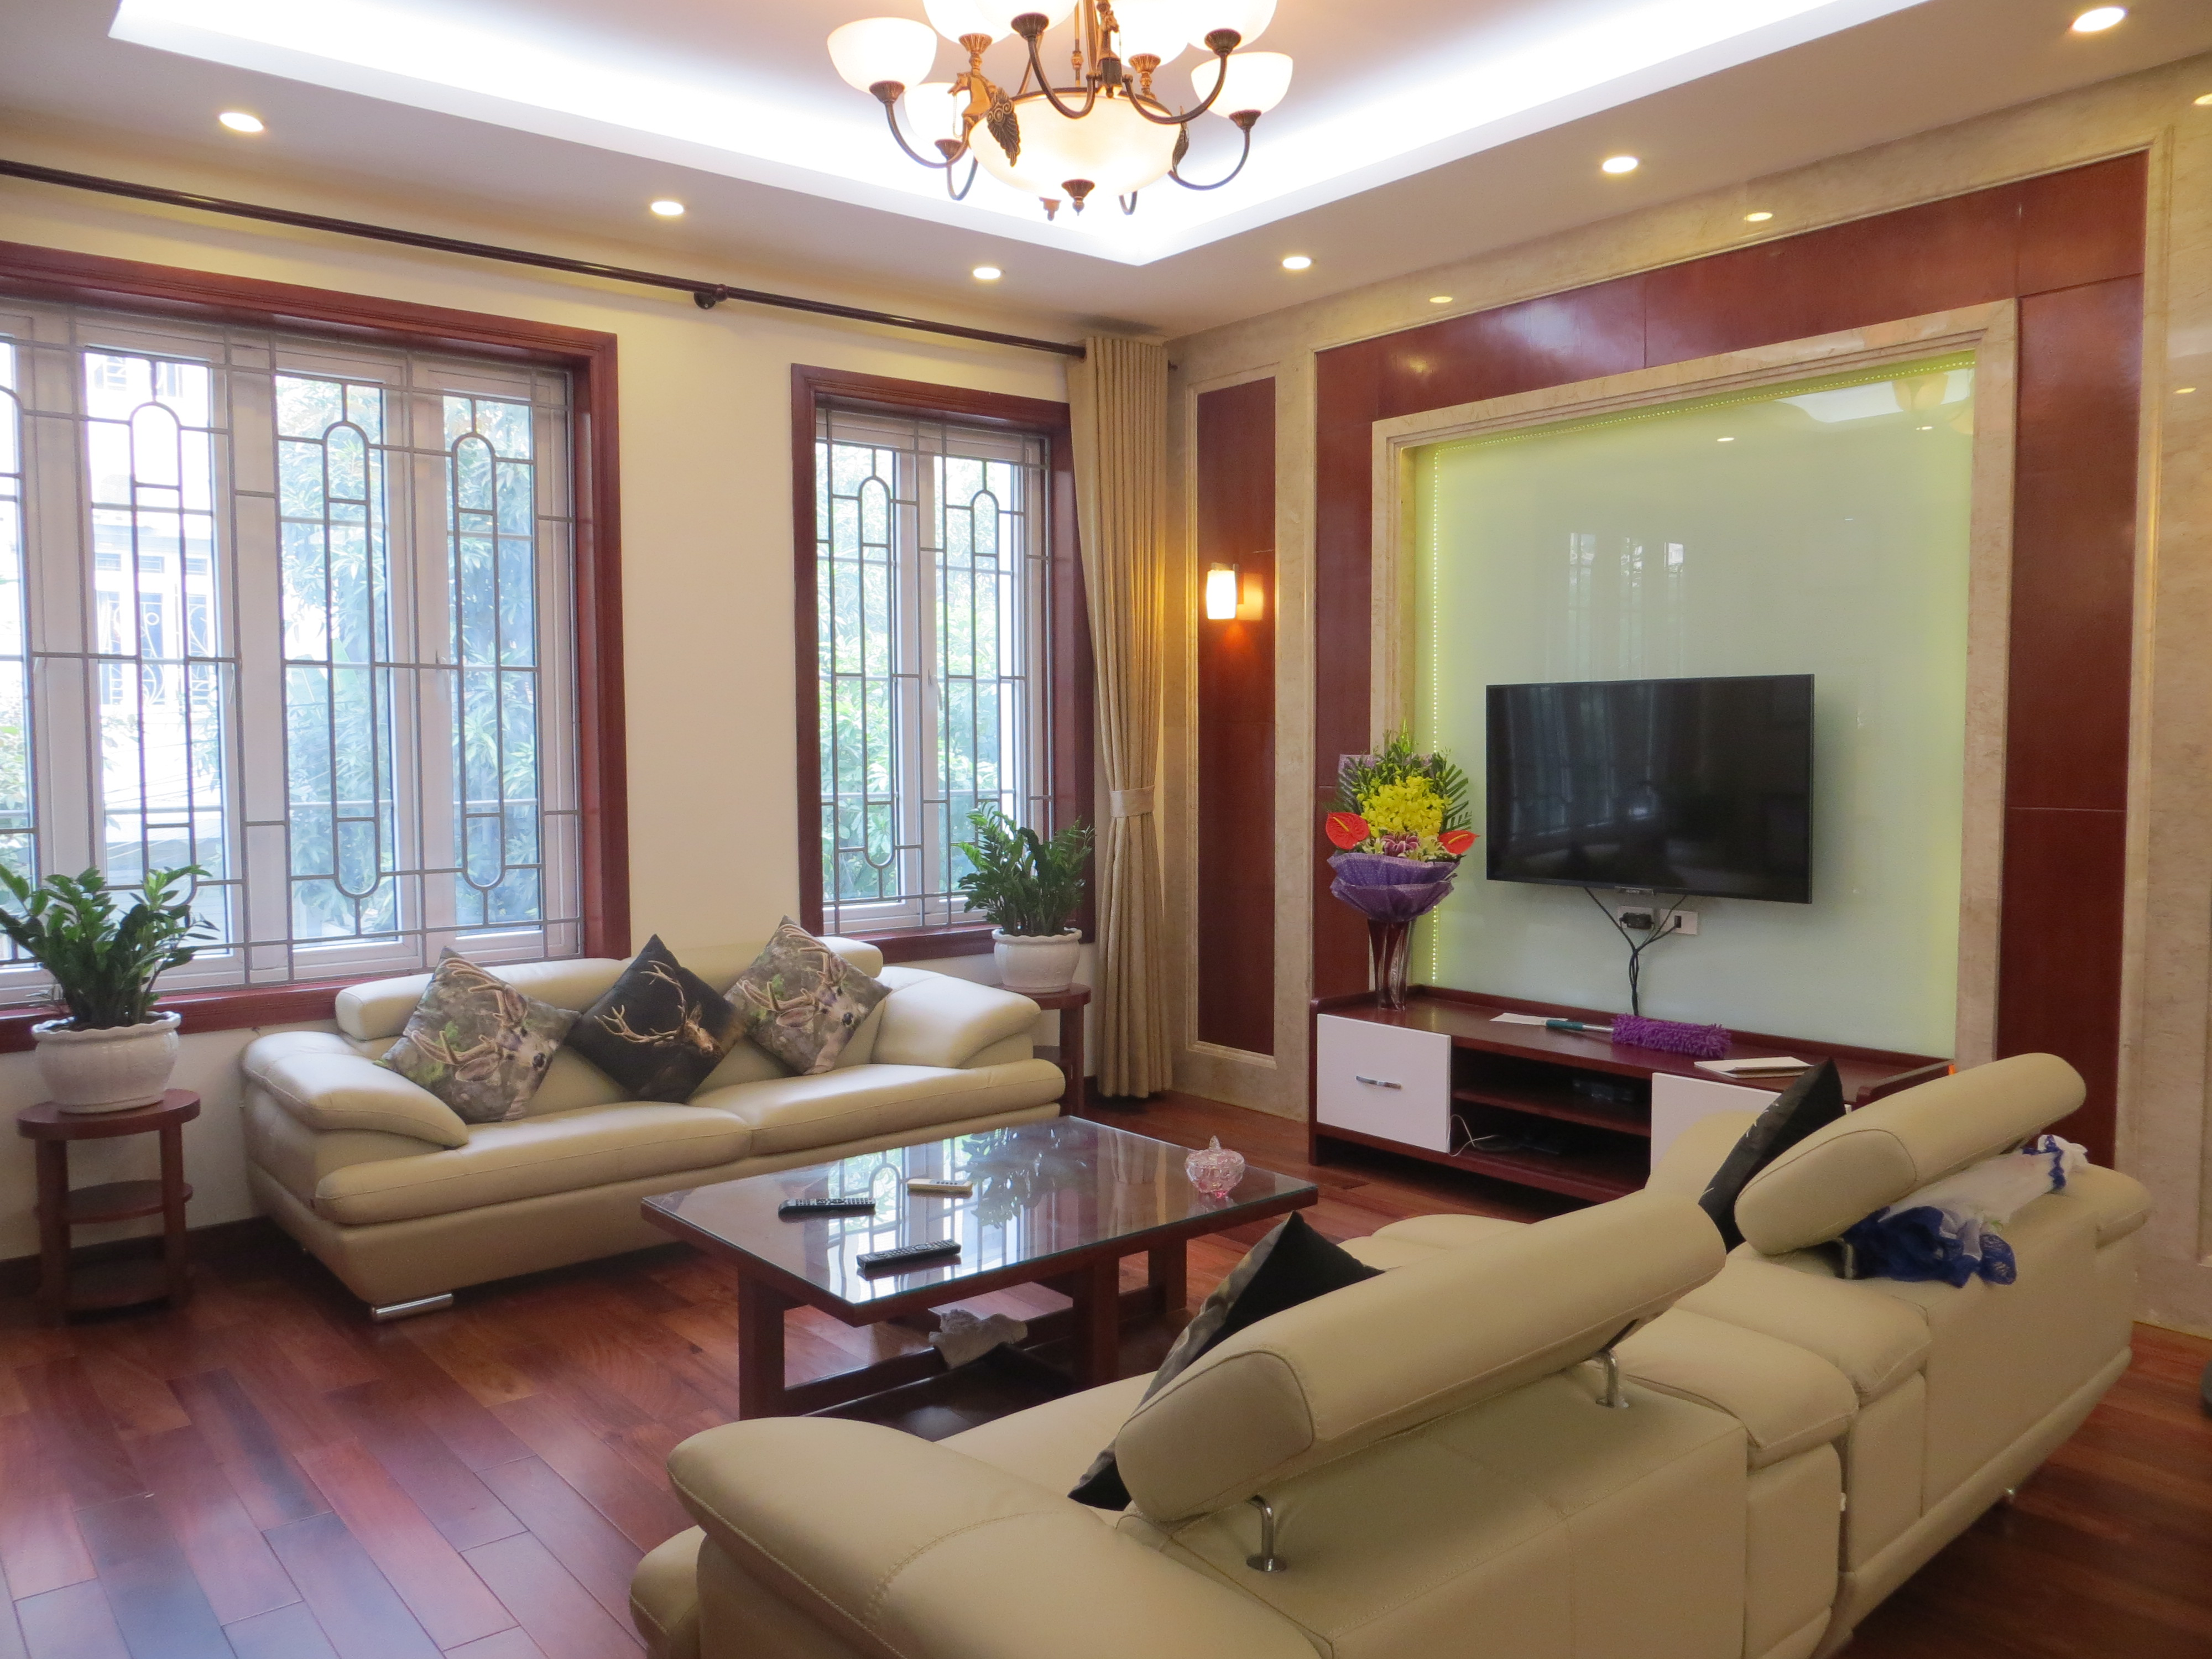 Splendid villa in Cau Giay area, Hanoi for rent